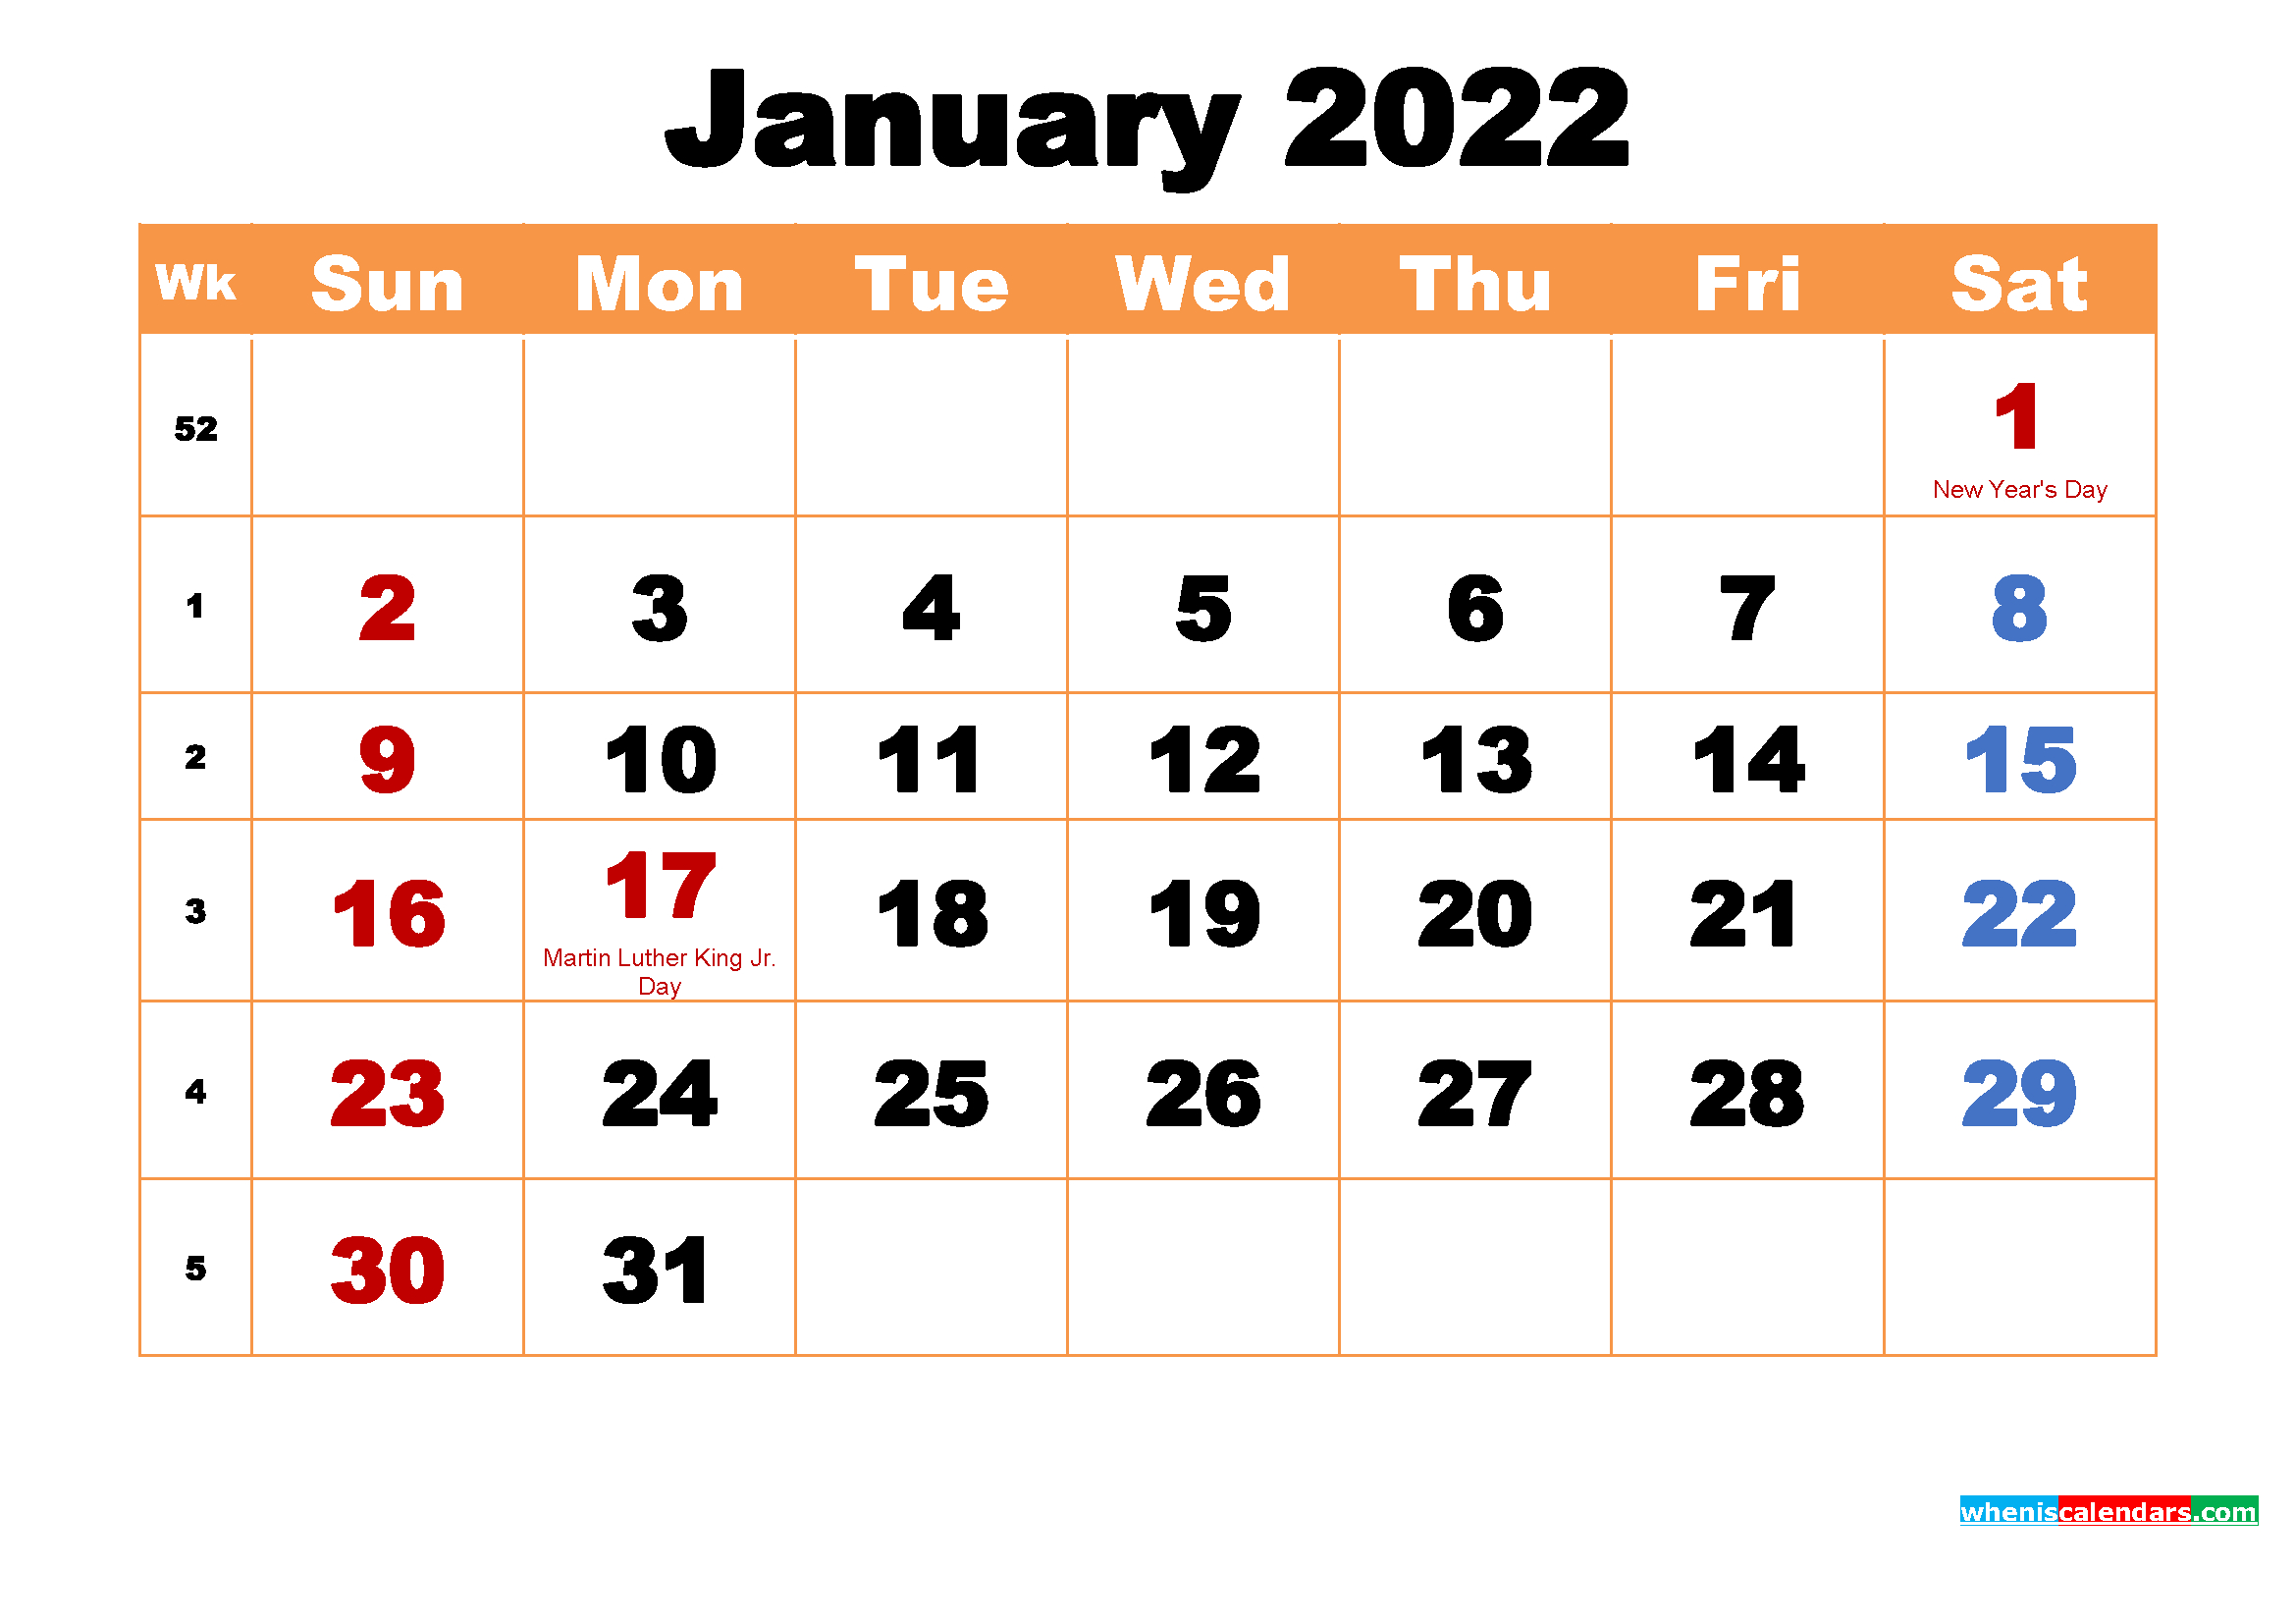 January 2022 Printable Monthly Calendar With Holidays inside Planner 2022 Printable Goal Image